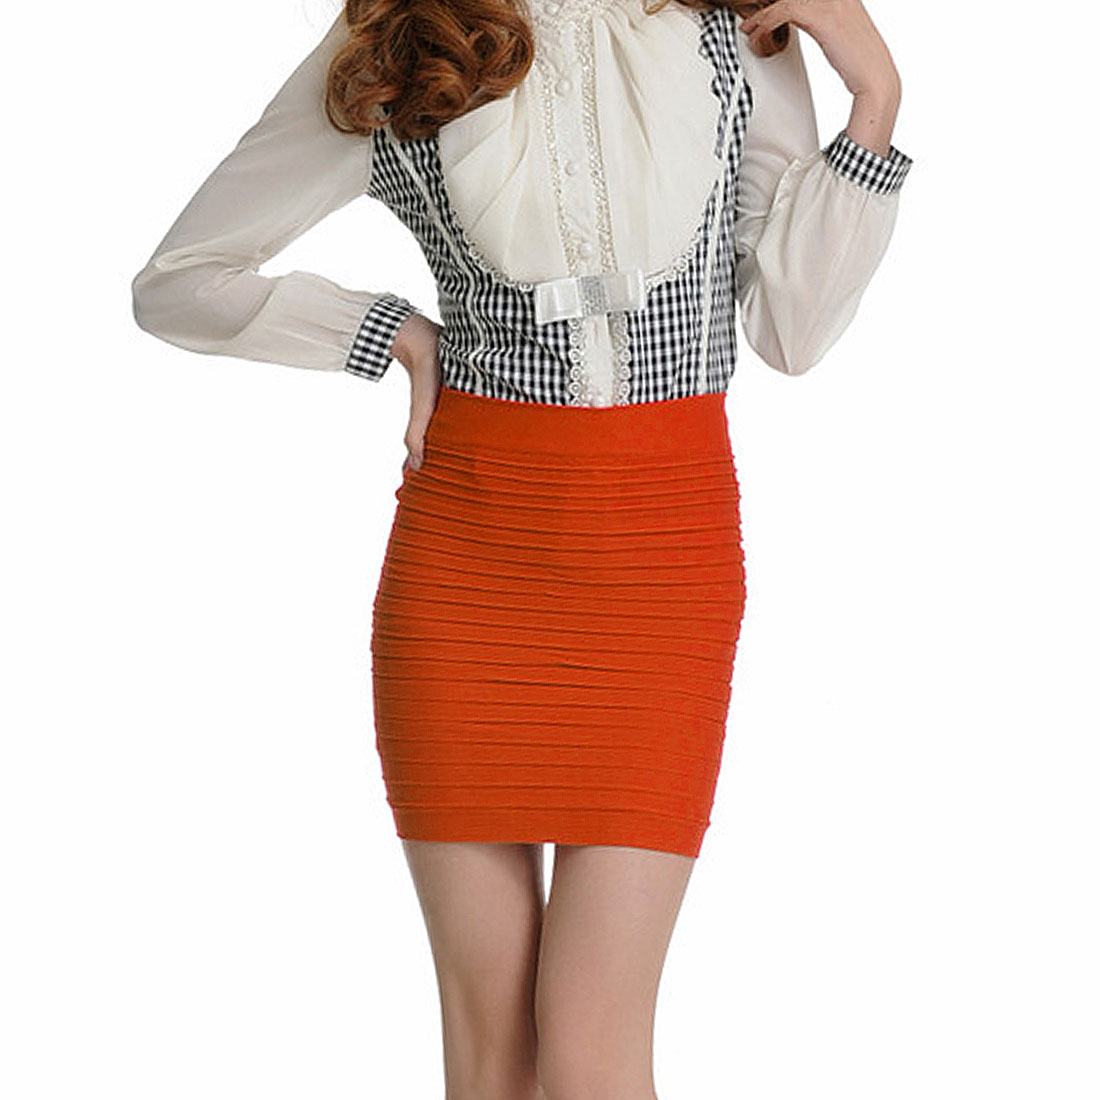 Hip Hugging Layered Stretch Mini Skirt Orange XS for Woman